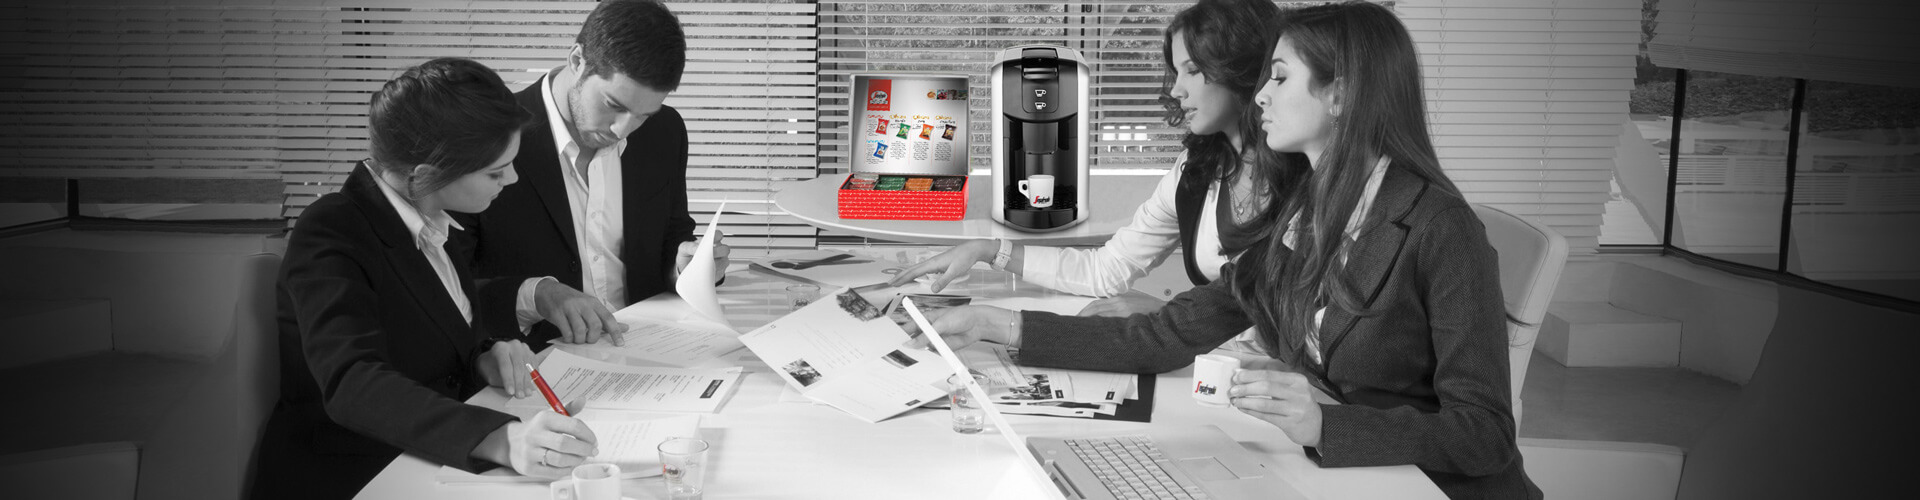 nextage-saeco-coffee-at-office-bw Office Solutions